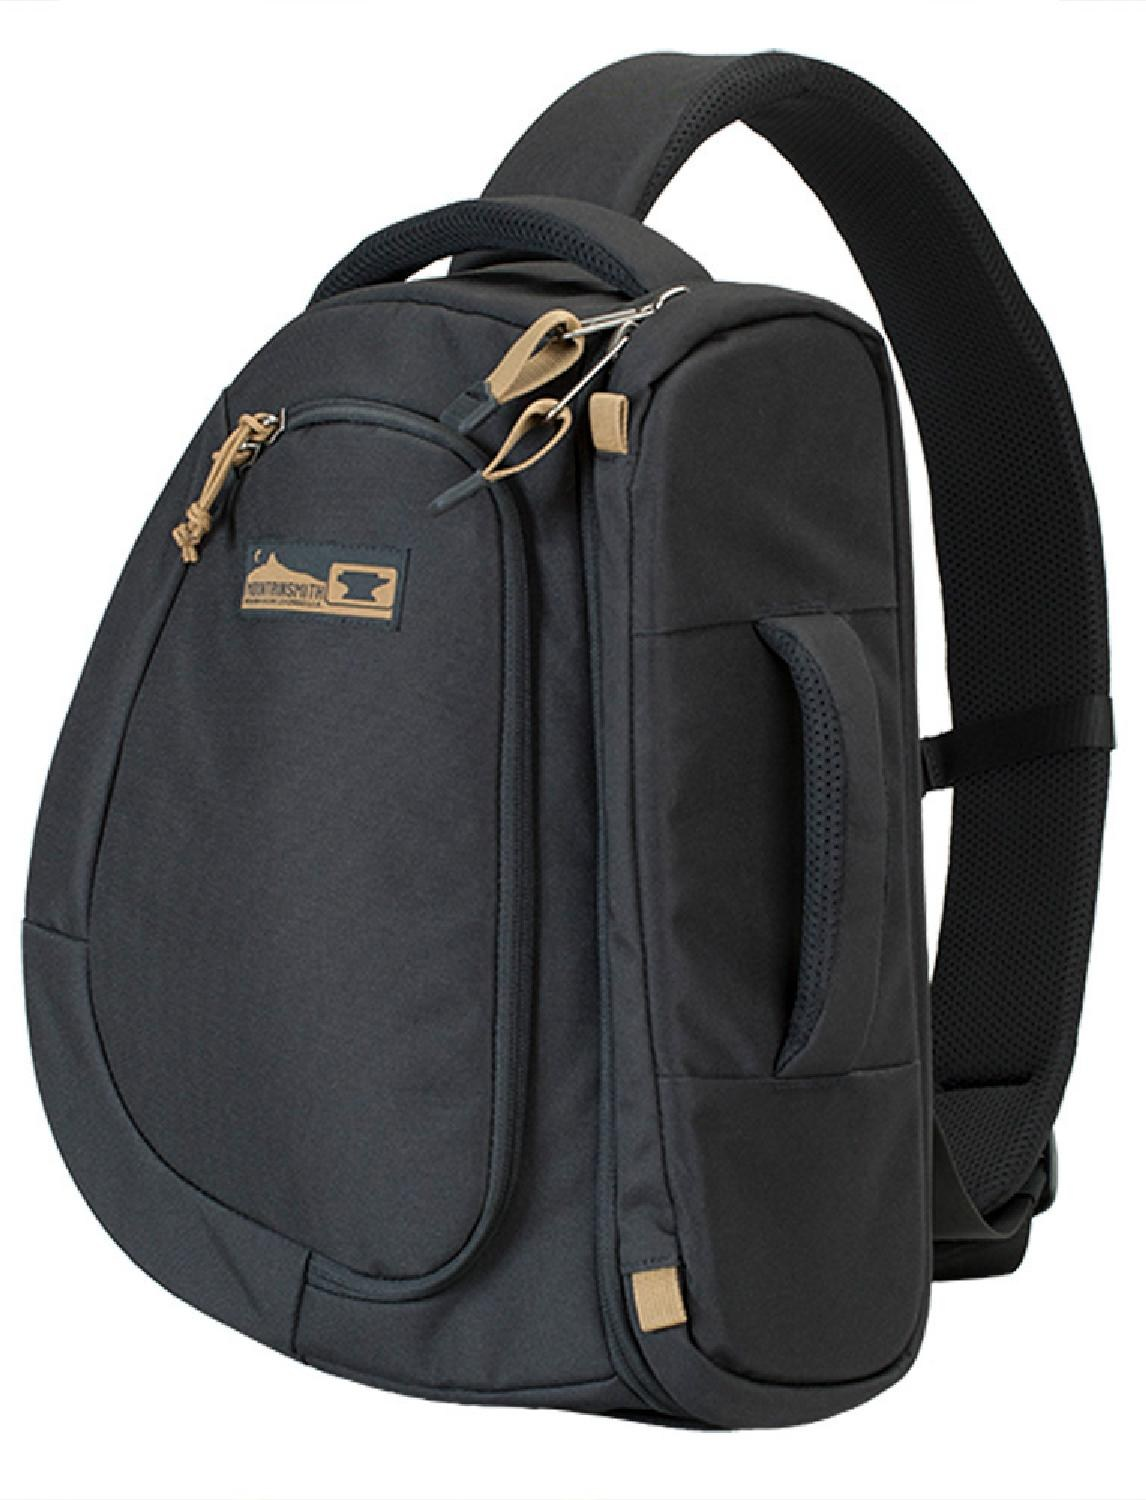 Mountainsmith Descent Camera Sling Pack - 11 Liters